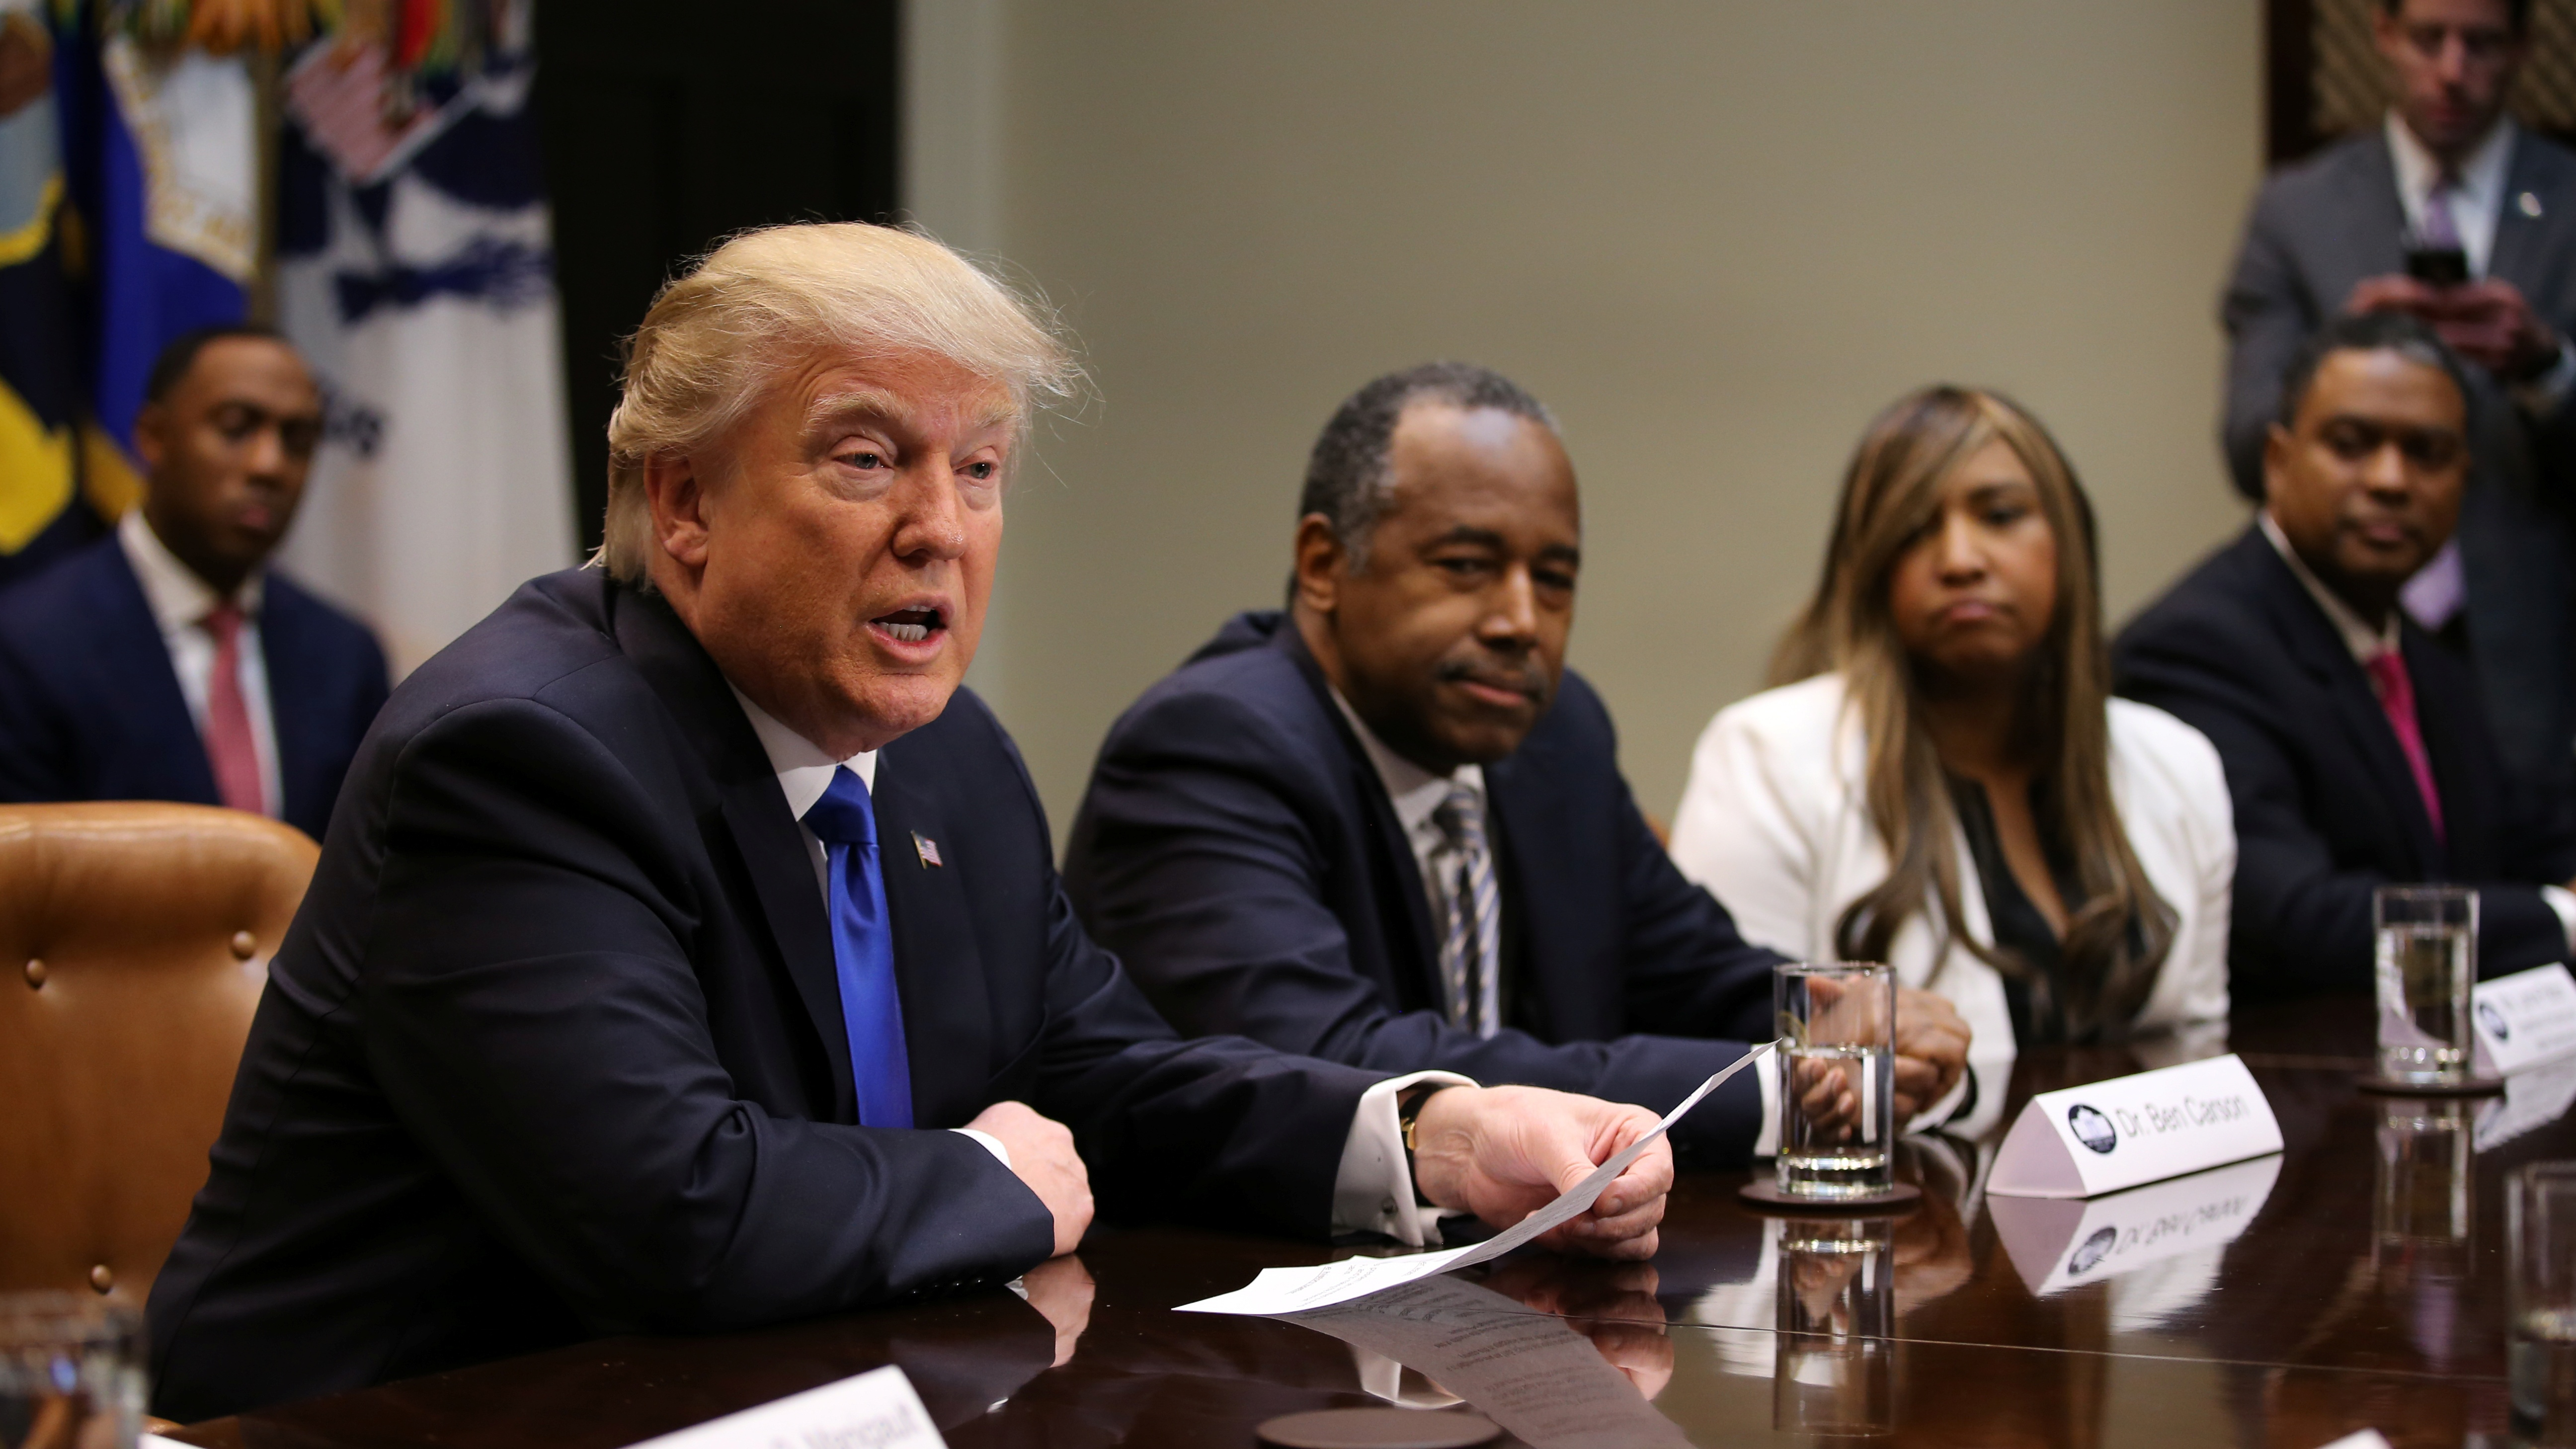 U.S. President Donald Trump attends an African American History Month listening session, accompanied by the Housing and Urban Development Secretary Ben Carson (C) at the Roosevelt room of the White House in Washington, U.S., February 1, 2017. REUTERS/Carlos Barria